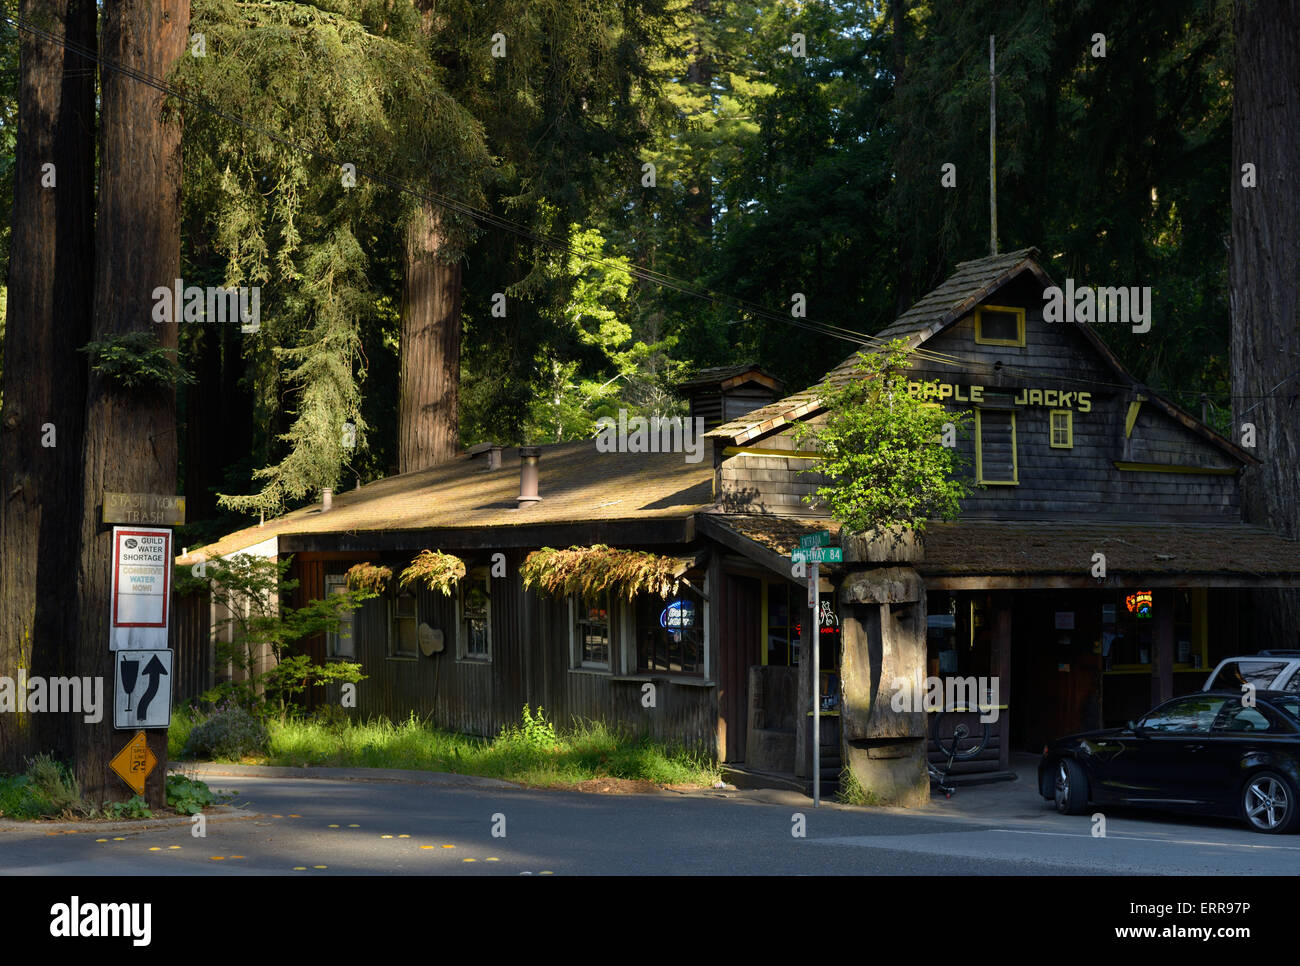 Apple Jack's dive bar, La Honda CA Stock Photo: 83490730 - Alamy